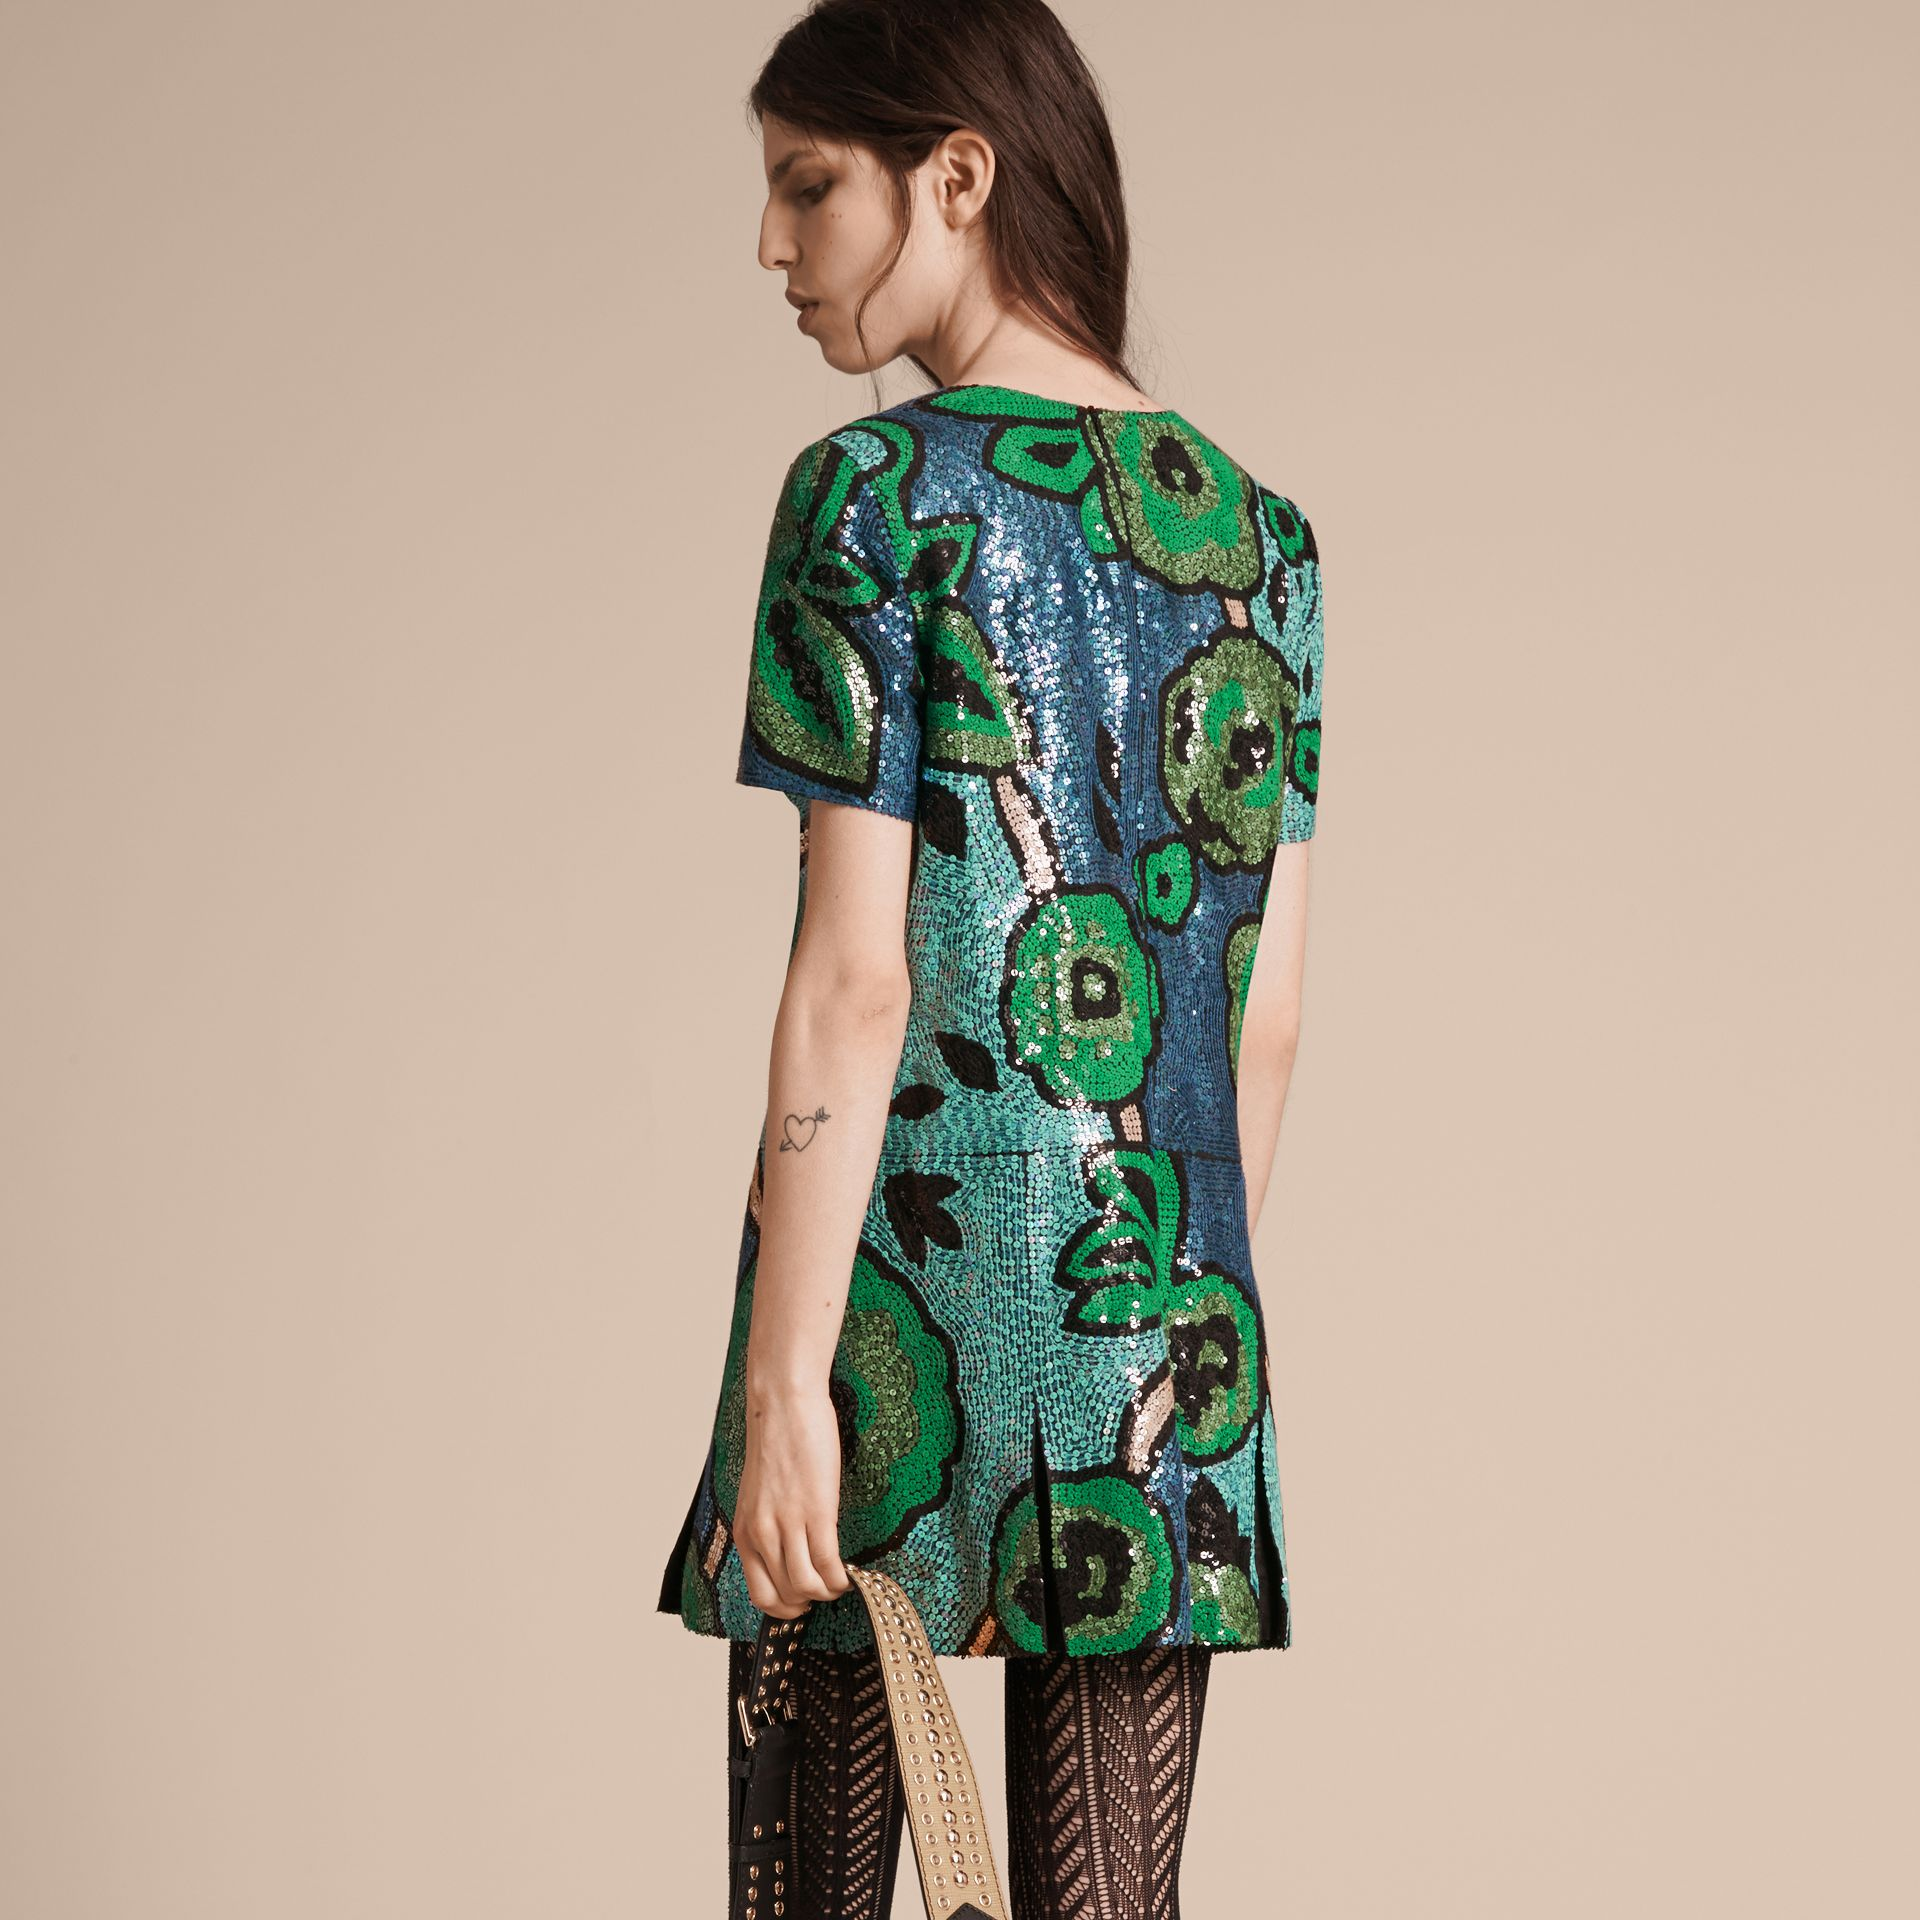 Bright green Hand-embroidered Sequin T-shirt Dress Bright Green - gallery image 3